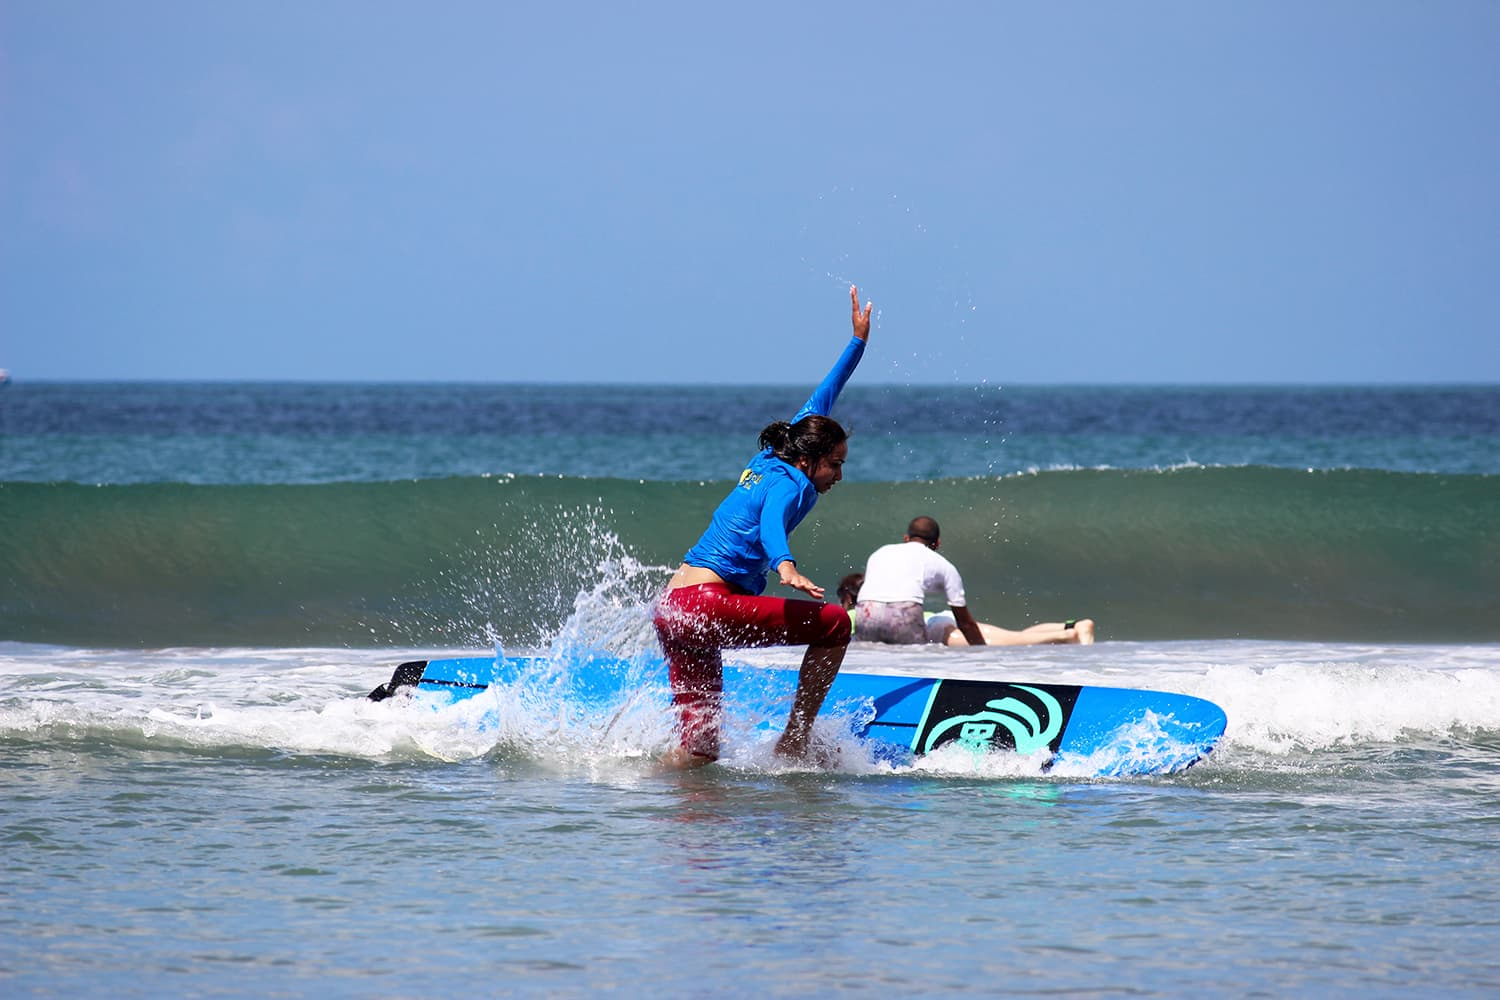 Taking a surfing lesson on Kuta Beach in Bali, Indonesia.